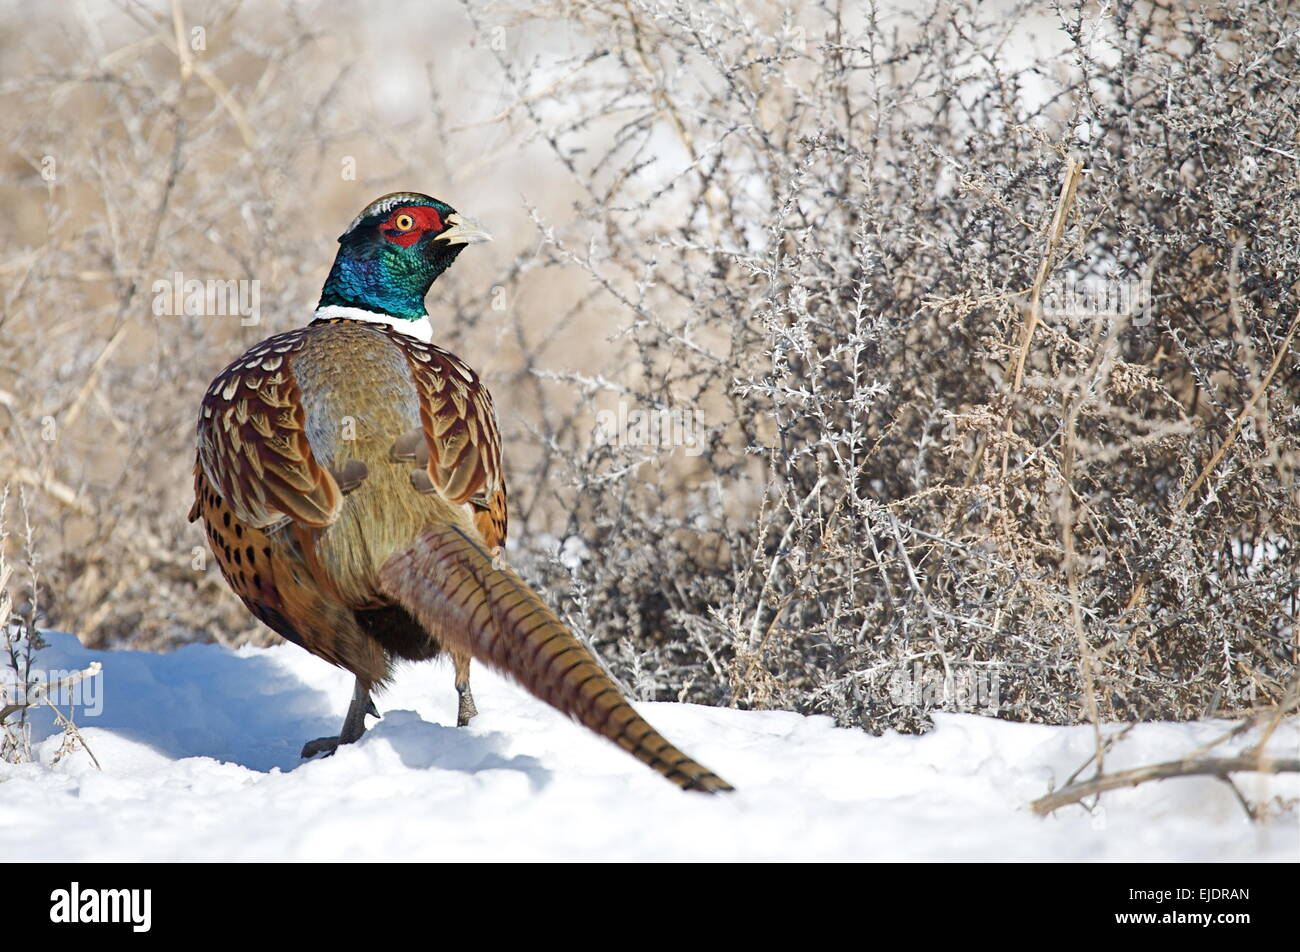 Ring-necked a.k.a. Ringneck Pheasant in winter snow with head turned back showing top side of the bird's plumage - Stock Image